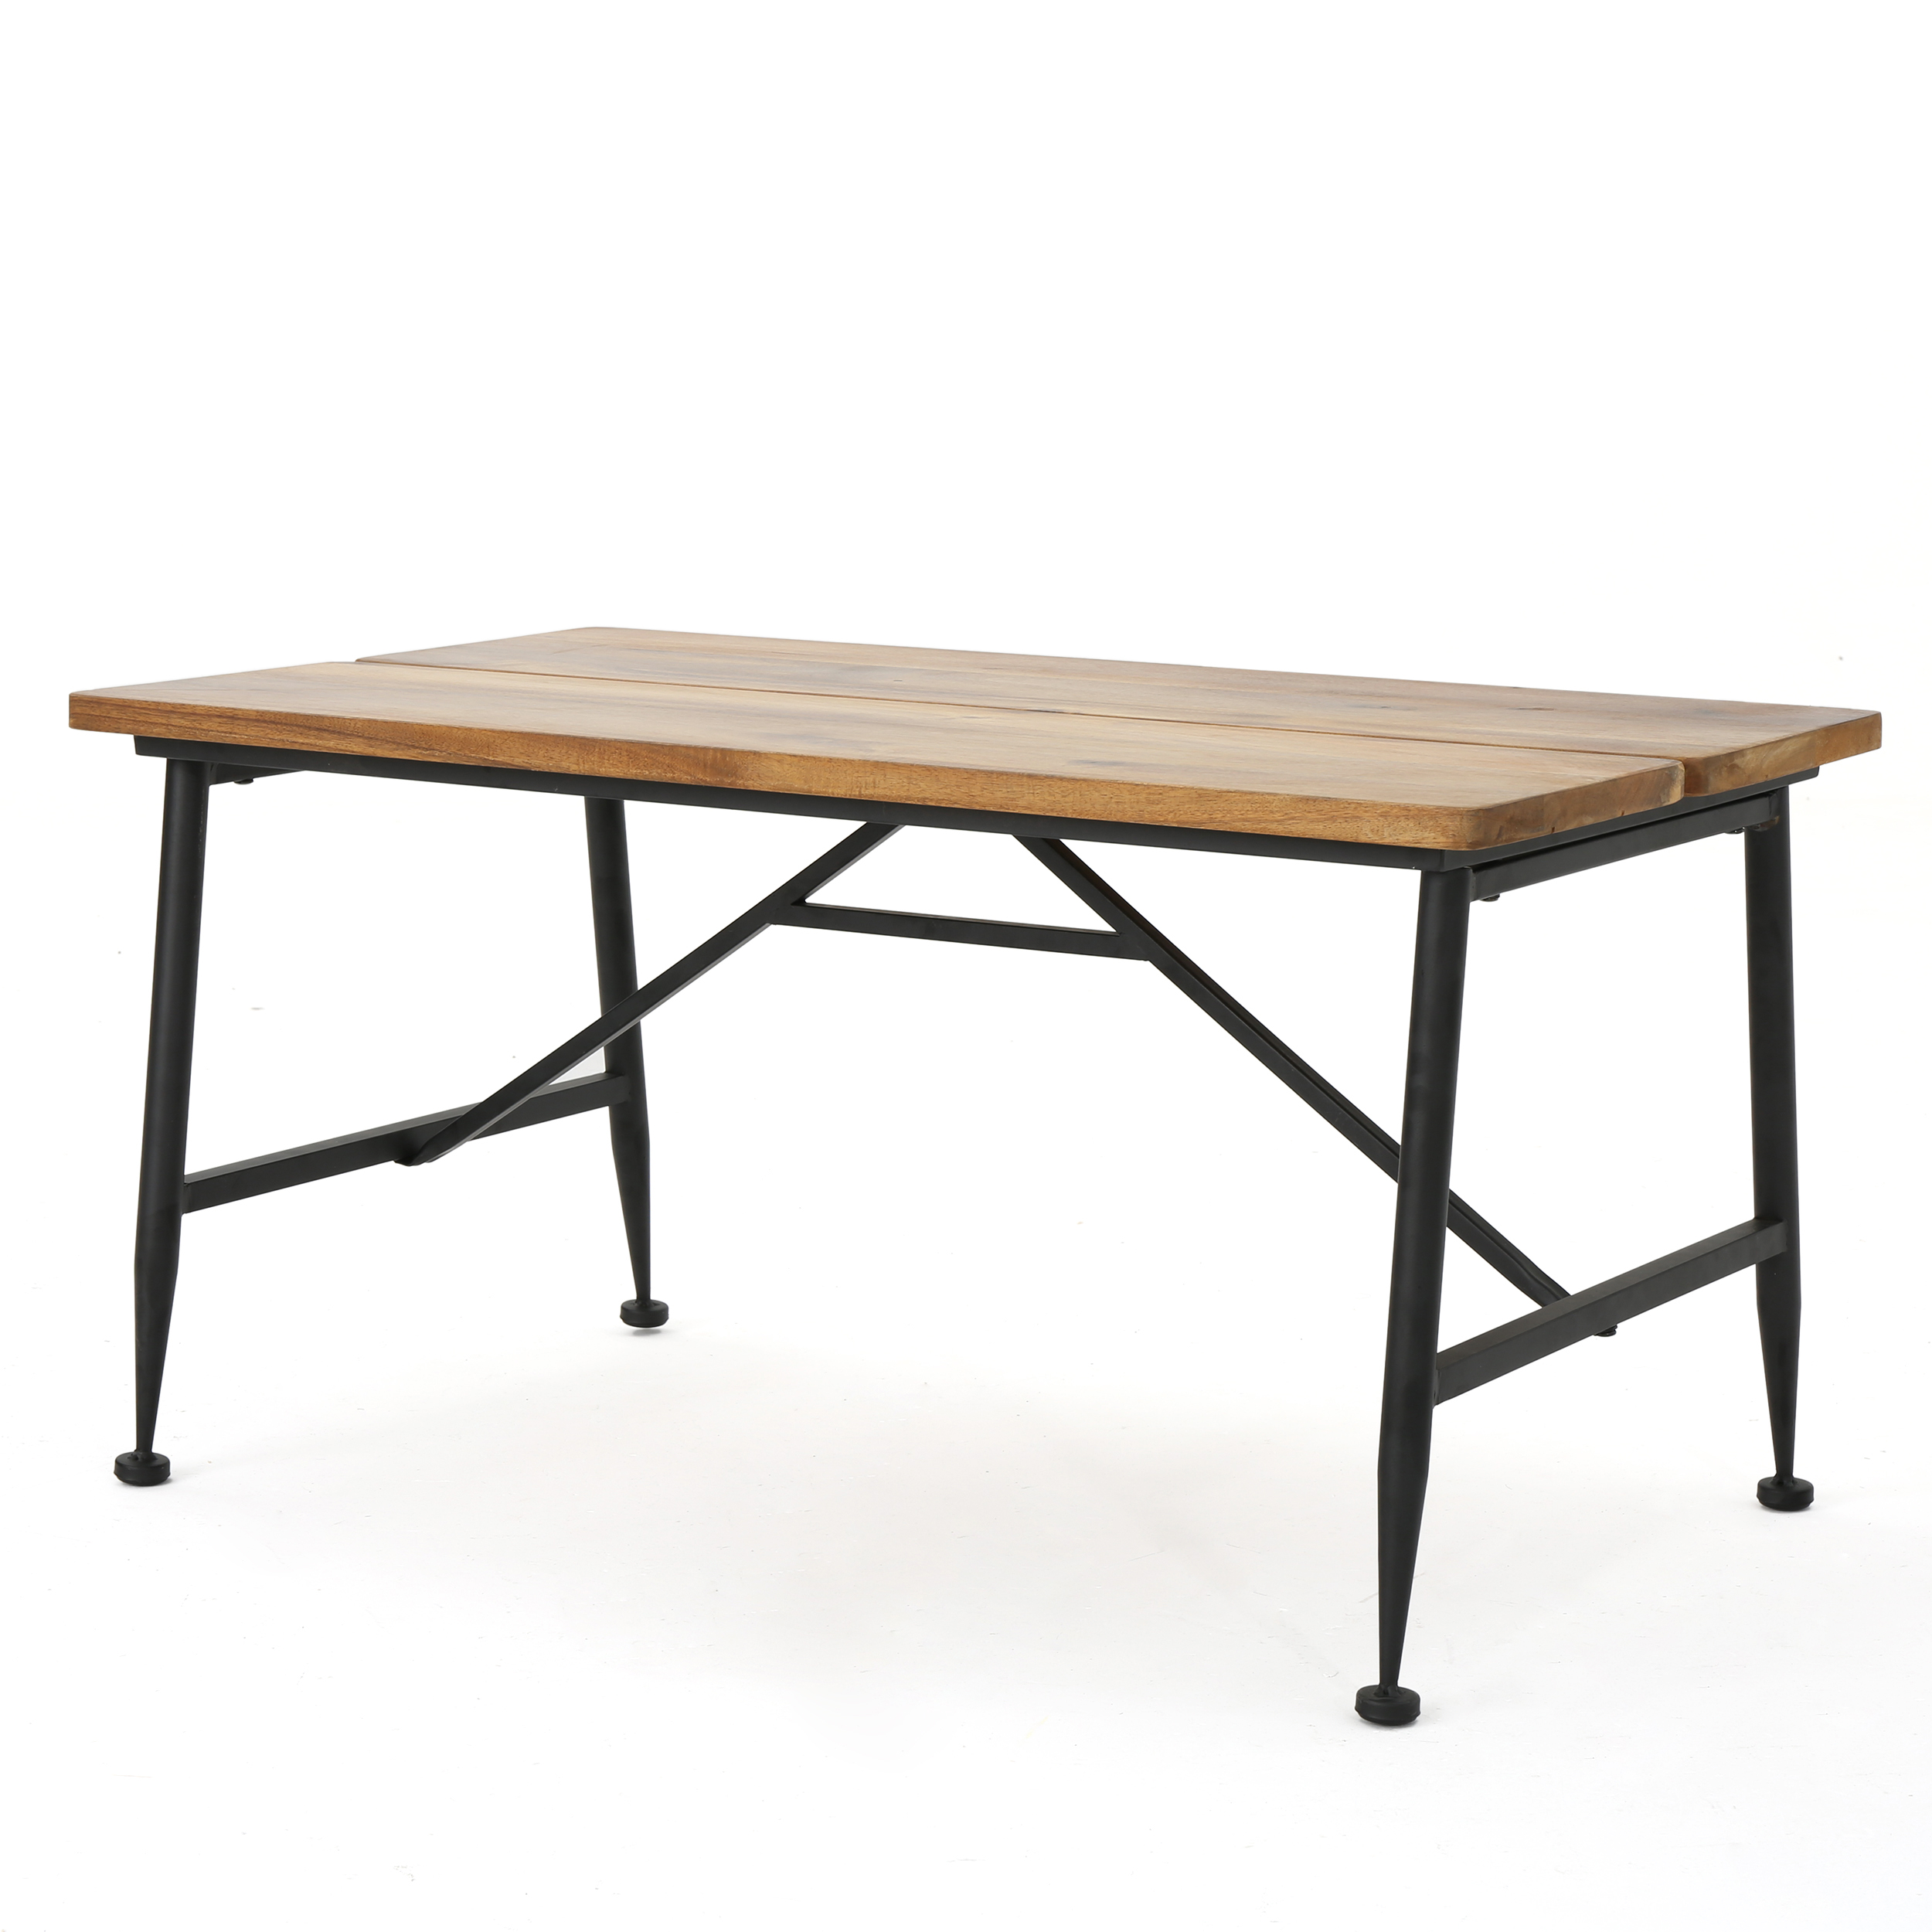 Noble House Cascada Indoor Industrial Acacia Wood Coffee Table with Iron Accents, Antique Finish, Black